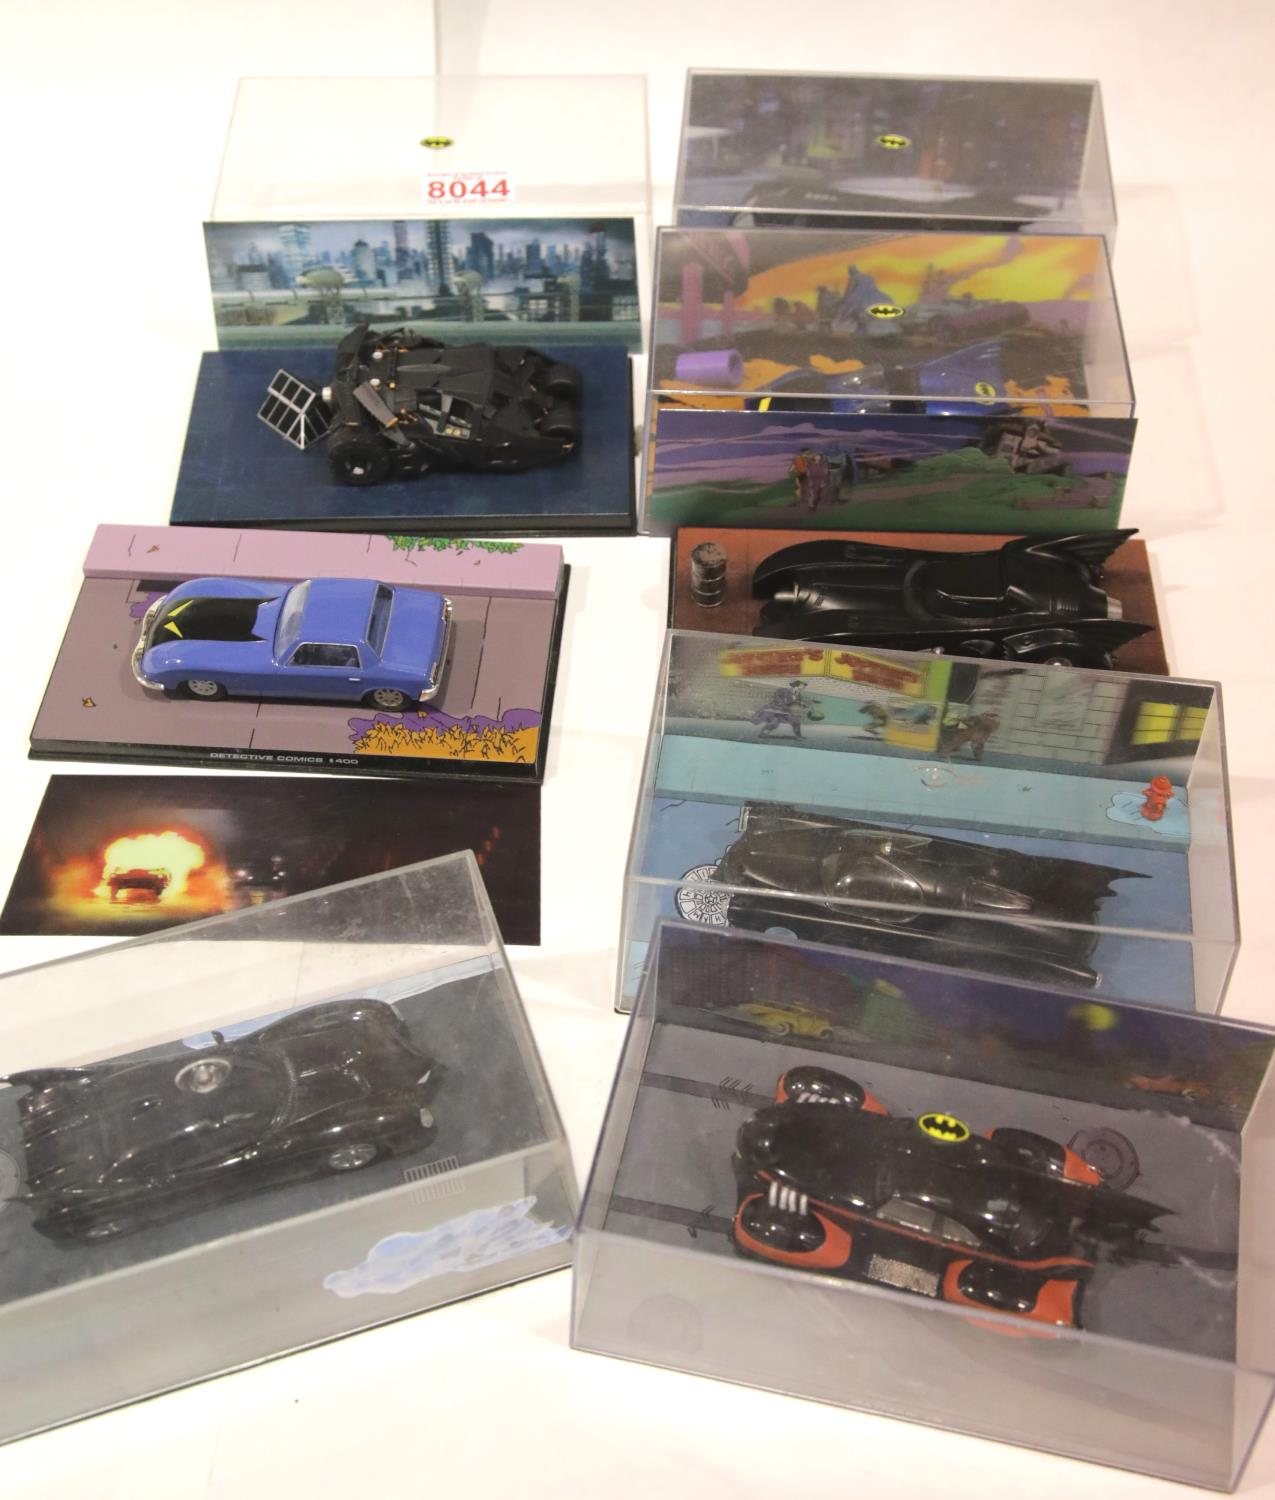 Lot 654 - Eight Detective comics Batmobile models in original boxes. P&P Group 2 (£18+VAT for the first lot